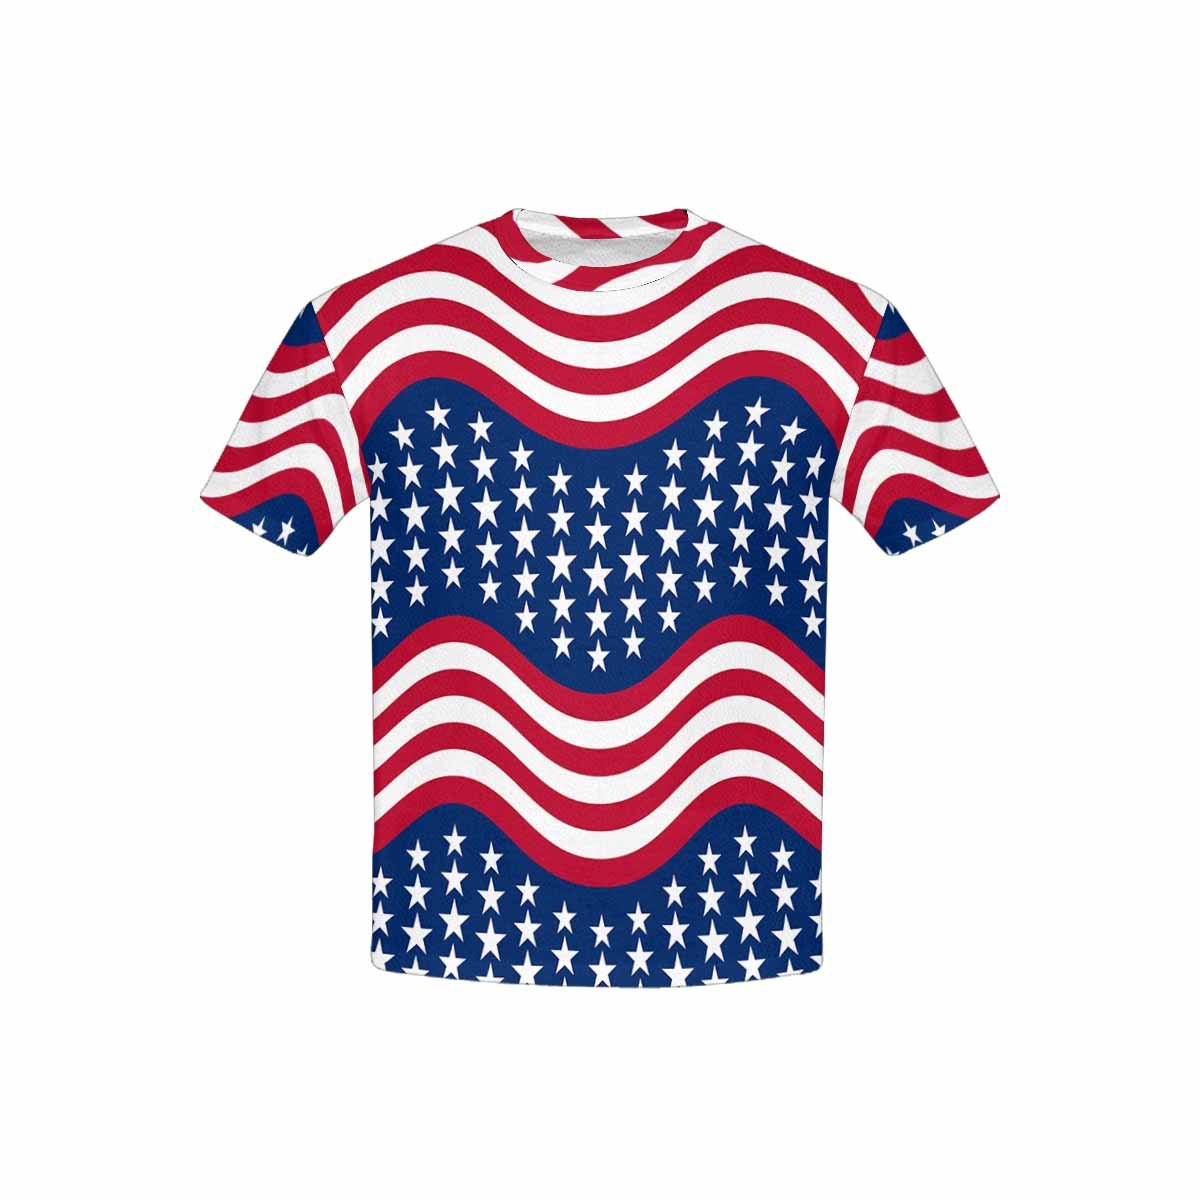 XS-XL INTERESTPRINT Youth T-Shirts Stars and Stripes in Traditional American Colors